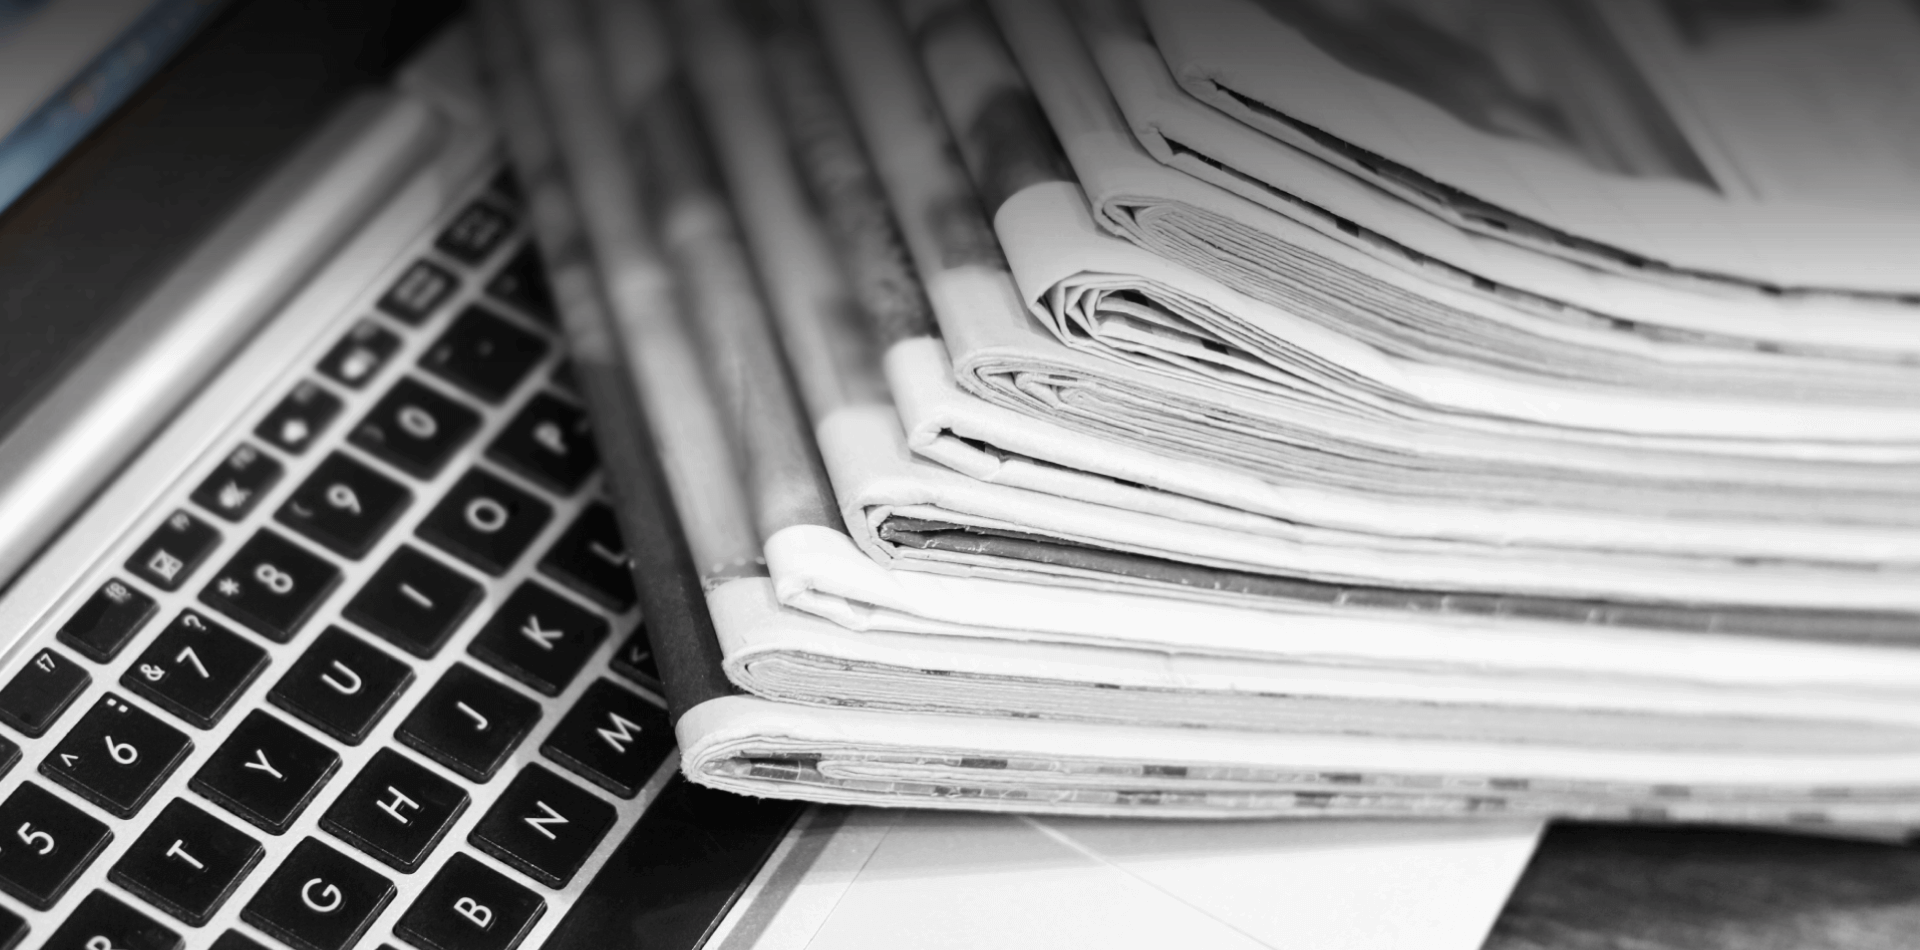 Newspapers on top of a laptop